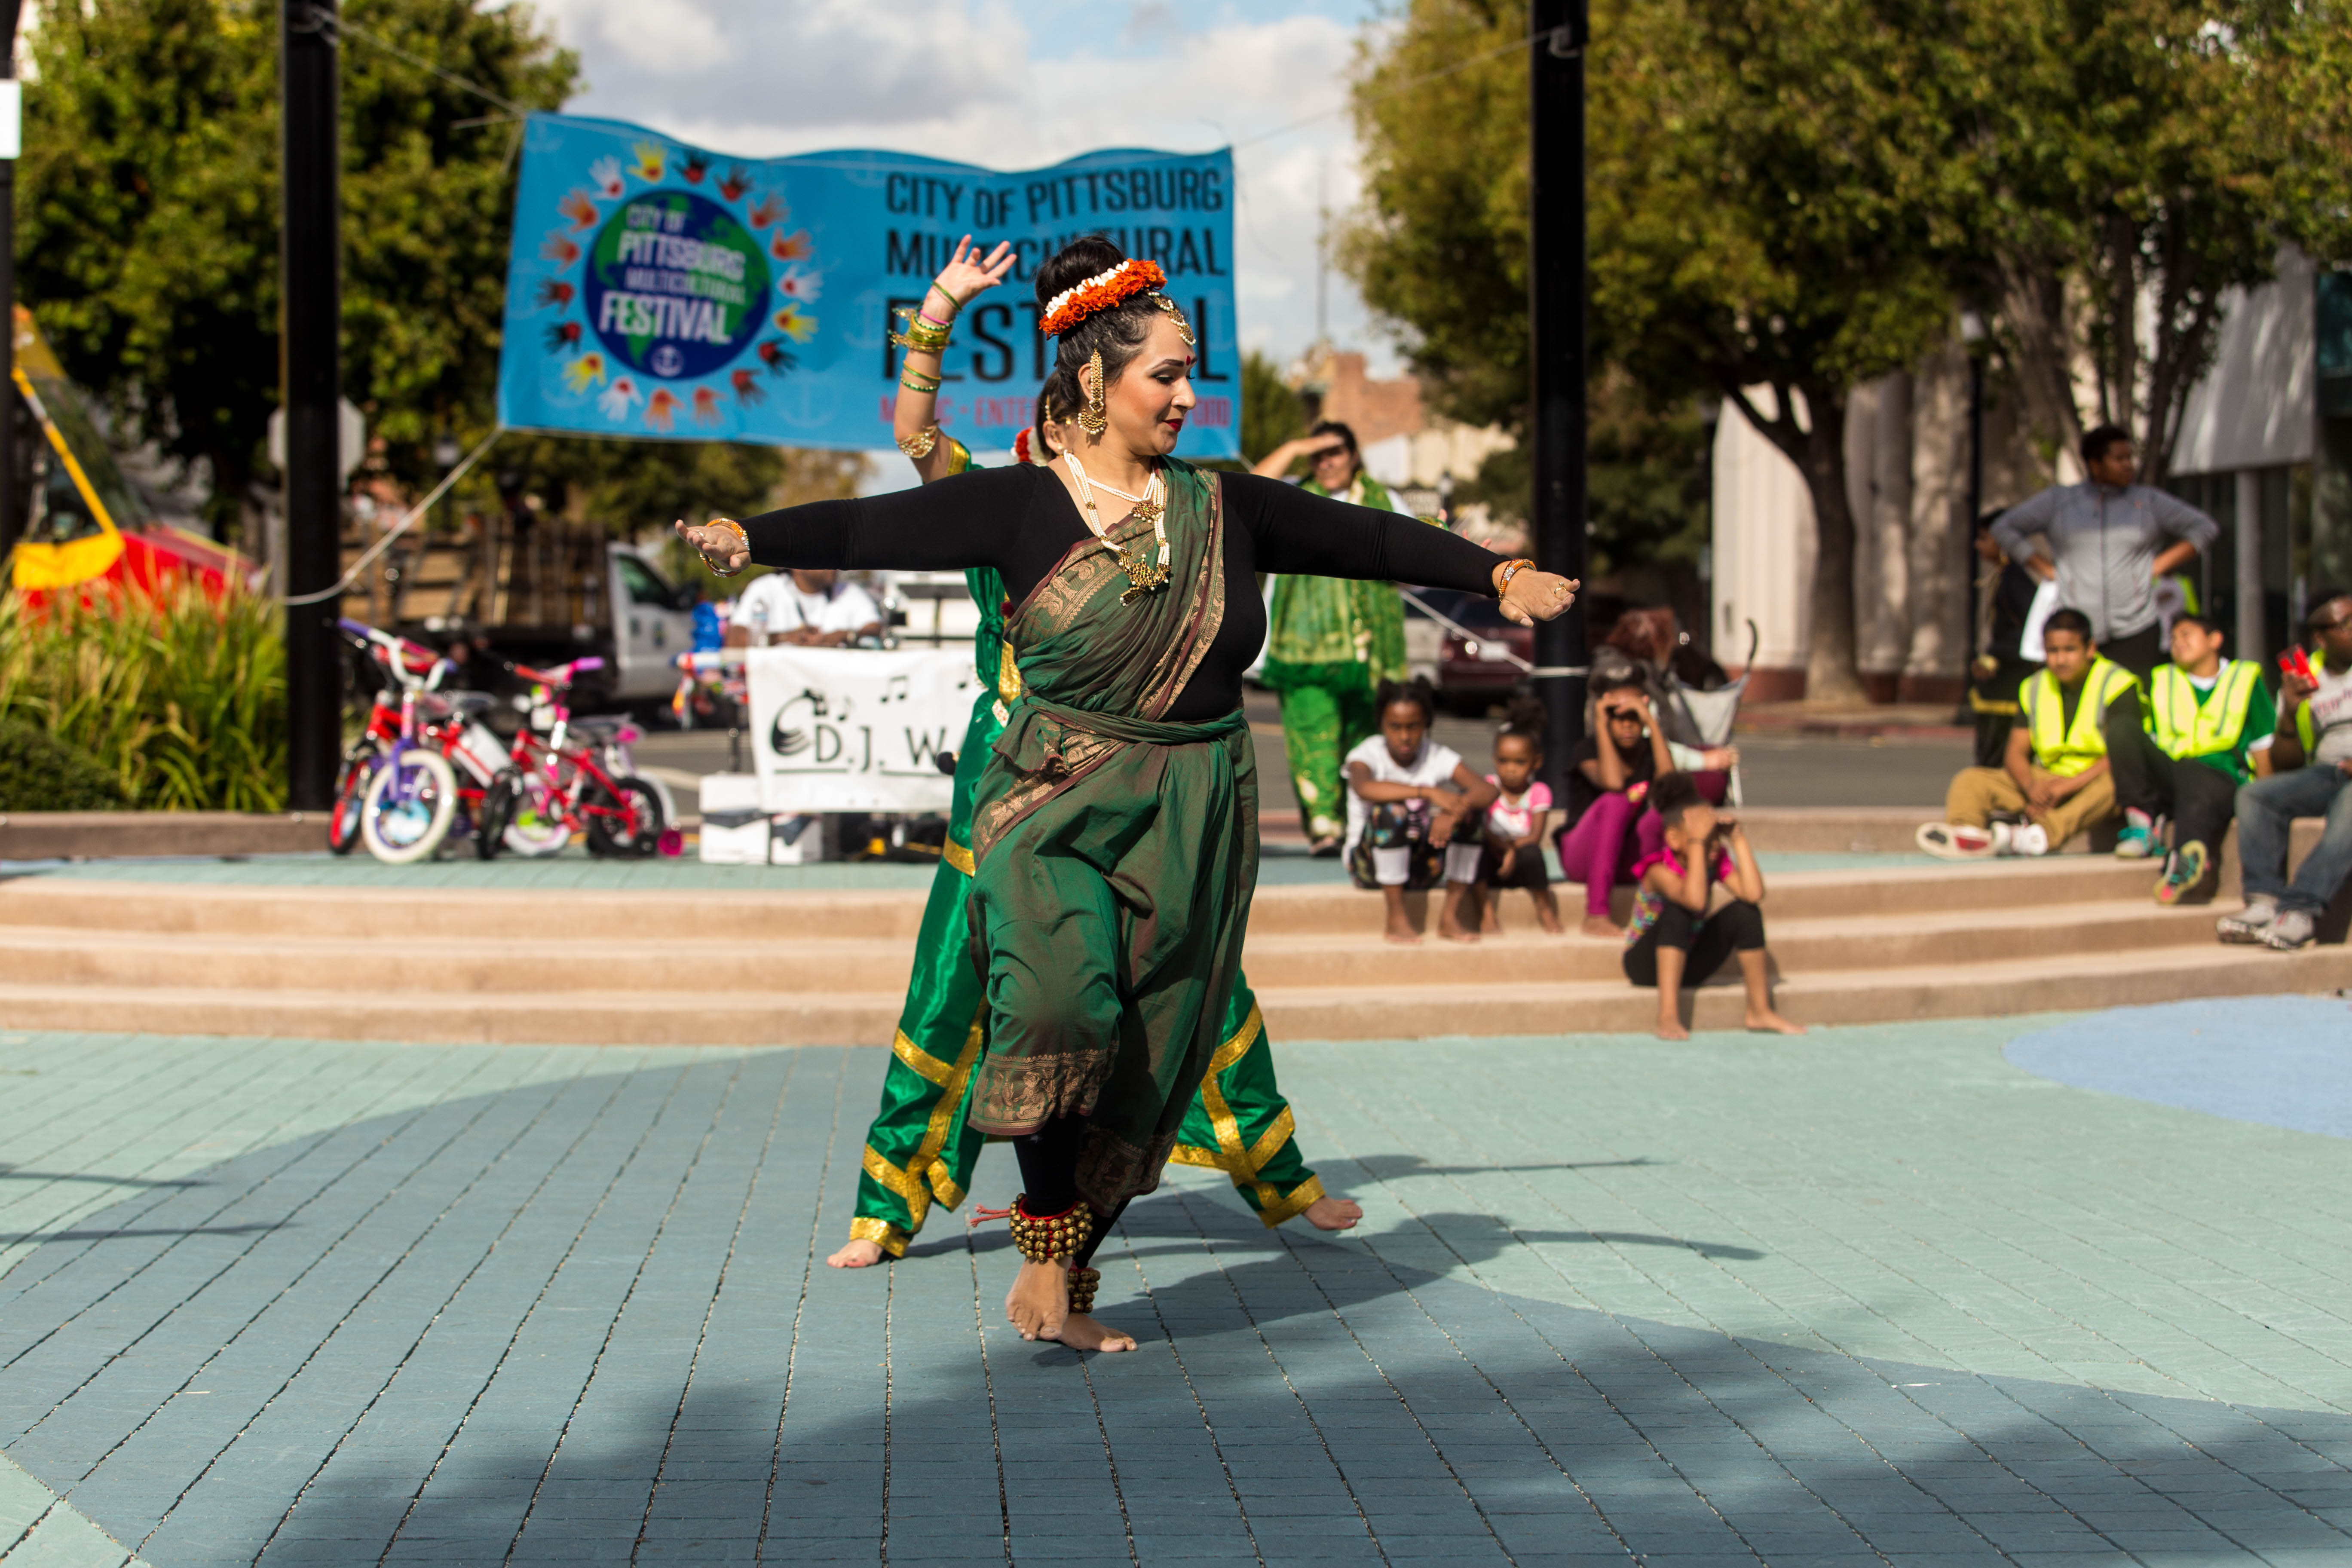 CITY_PITTSBURG_MULTICULTURAL_OCTOBER_2016 (560)